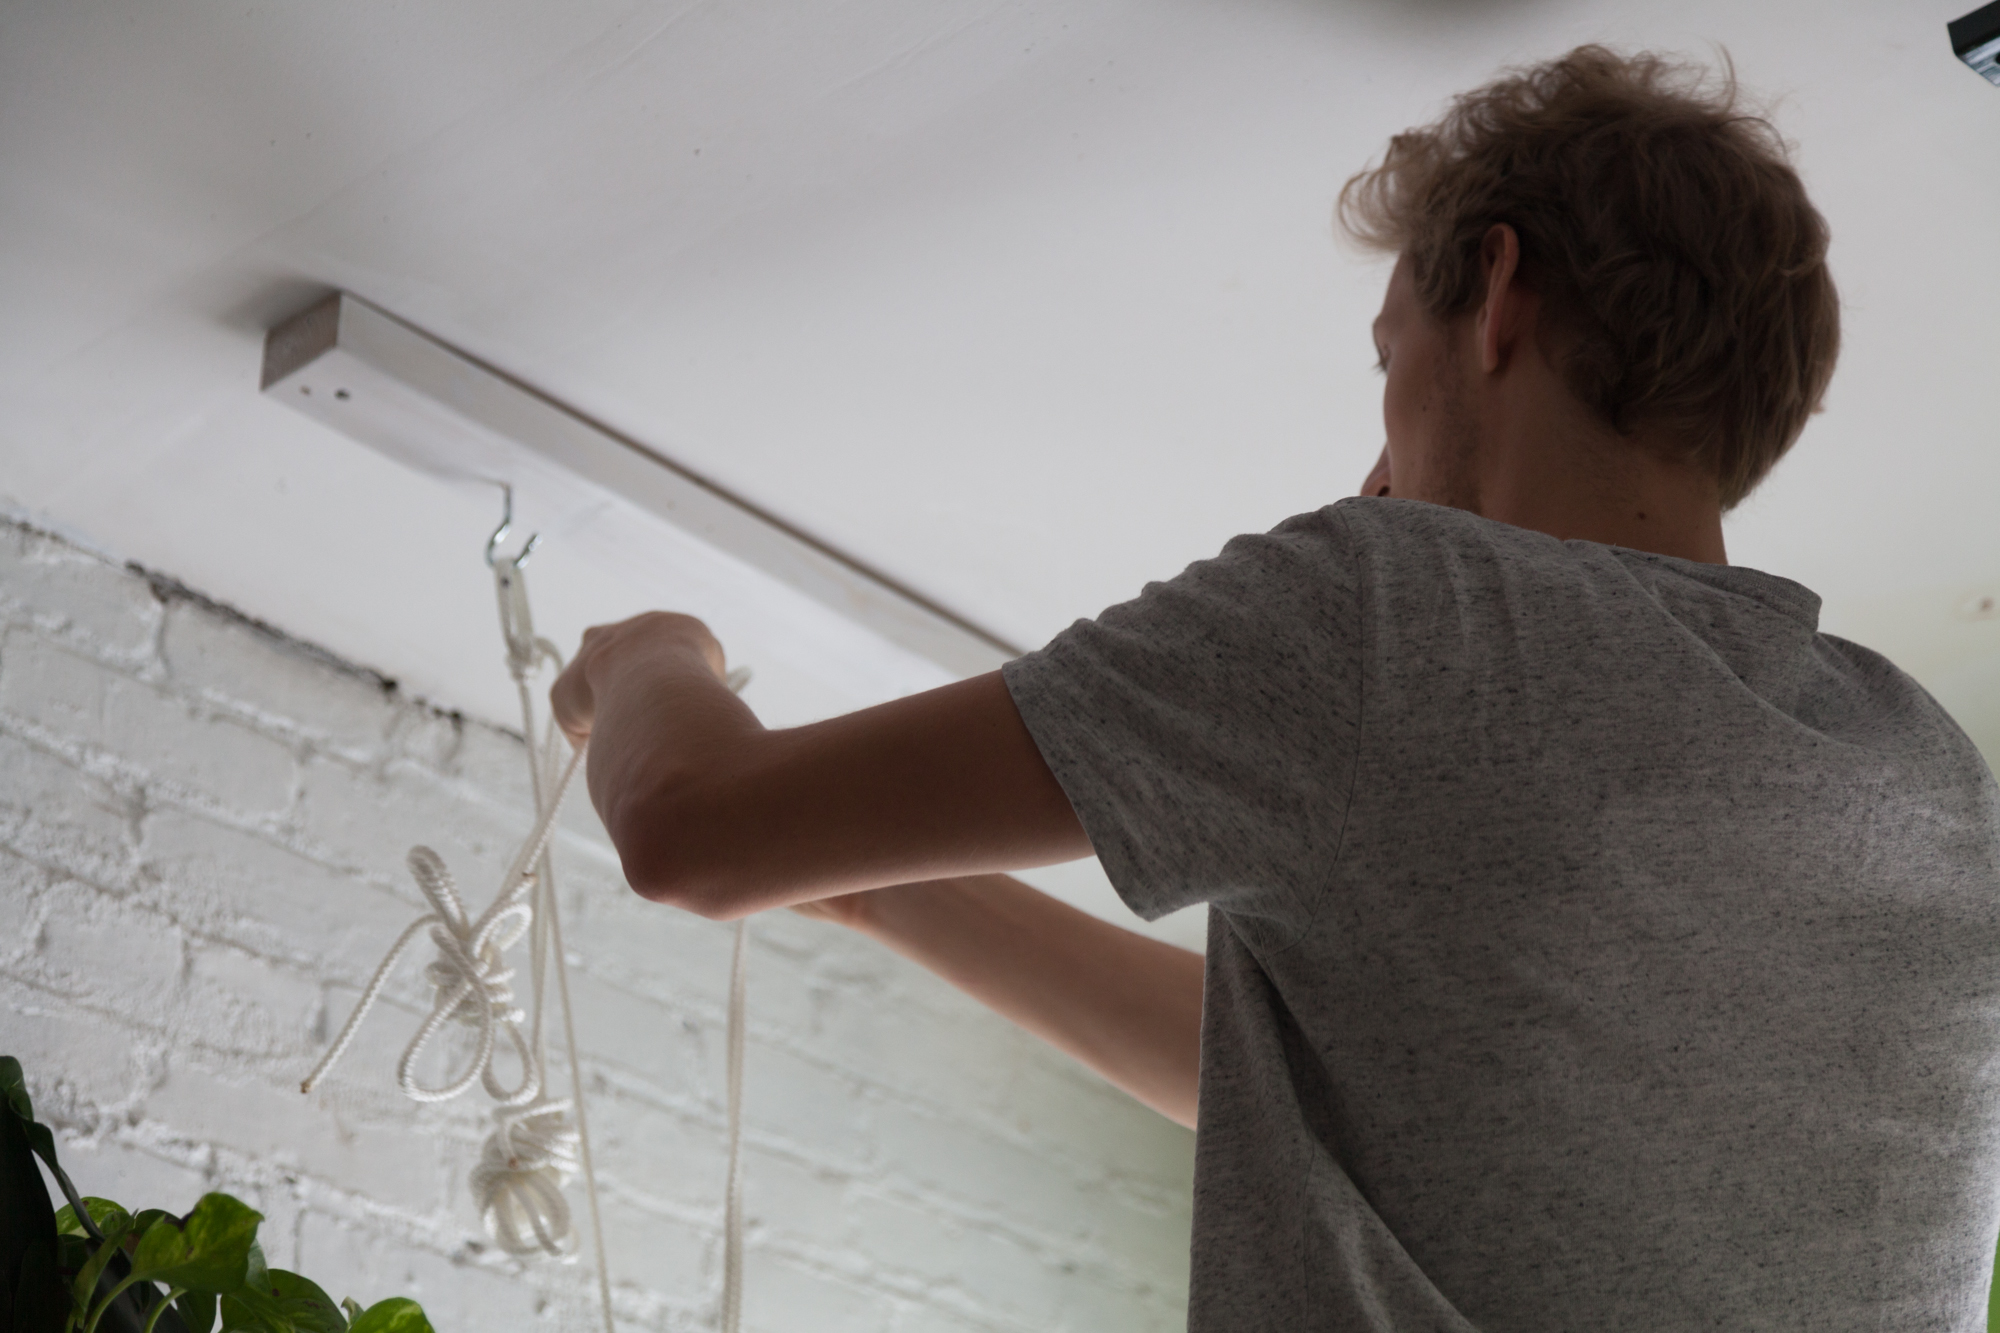 Once the wood in the ceiling was painted, Sander began to loop the rope.